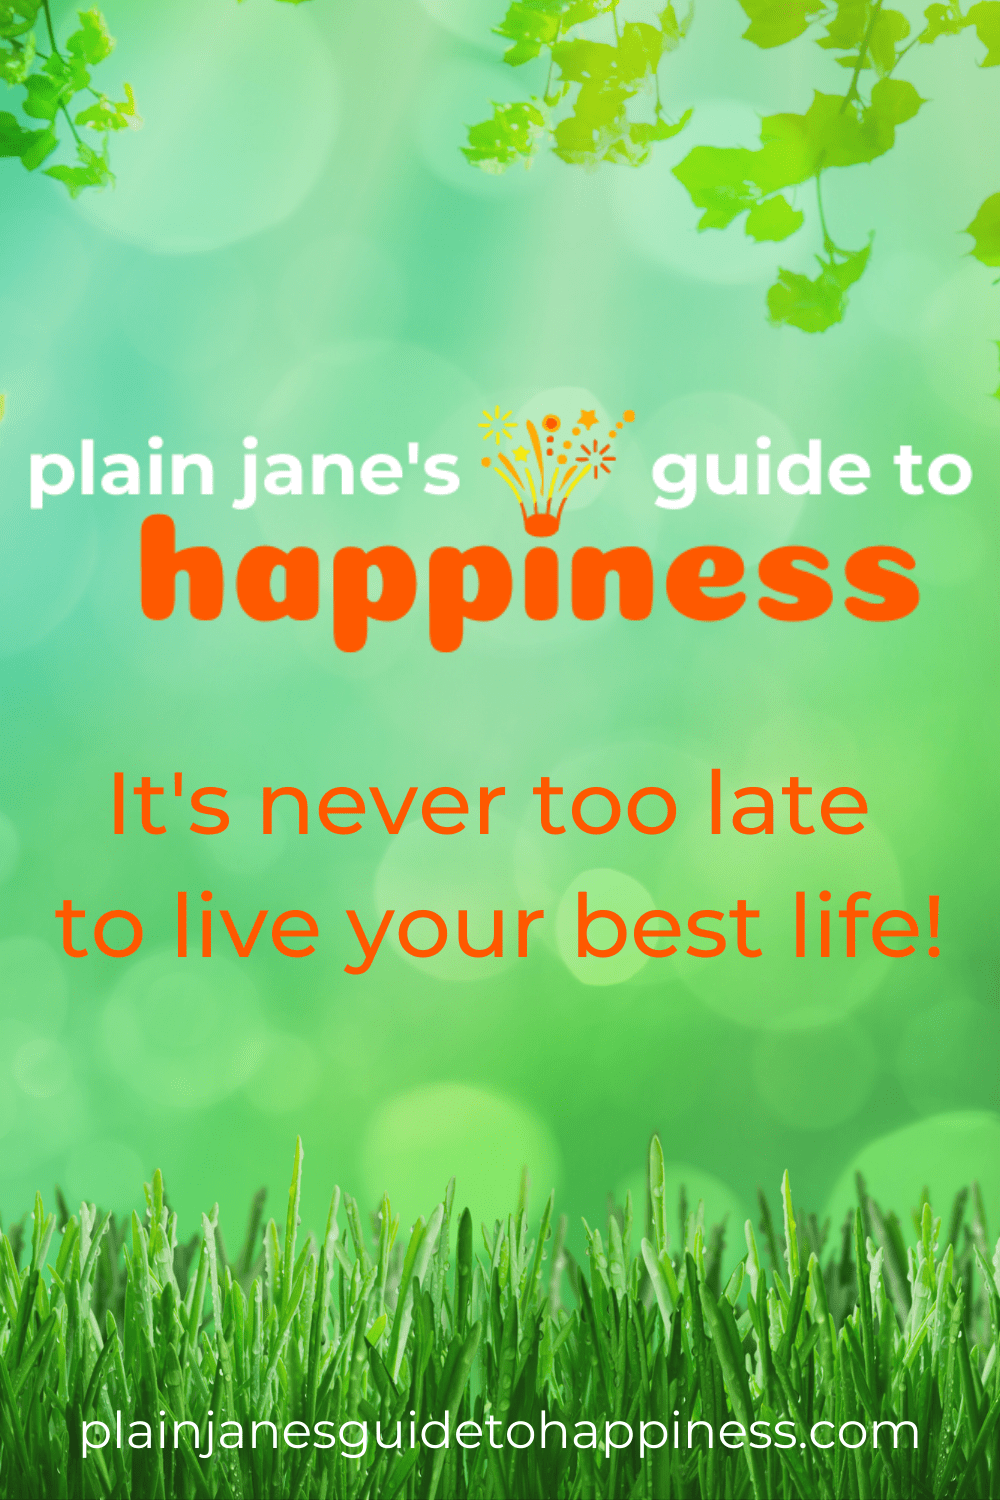 Plain Jane's Guide to Happiness. Your time is here. Every day is a new day, brimming with potential. How will you use it? What are you waiting for? It's never too late to live your best life. via @plainjanesguidetohappiness